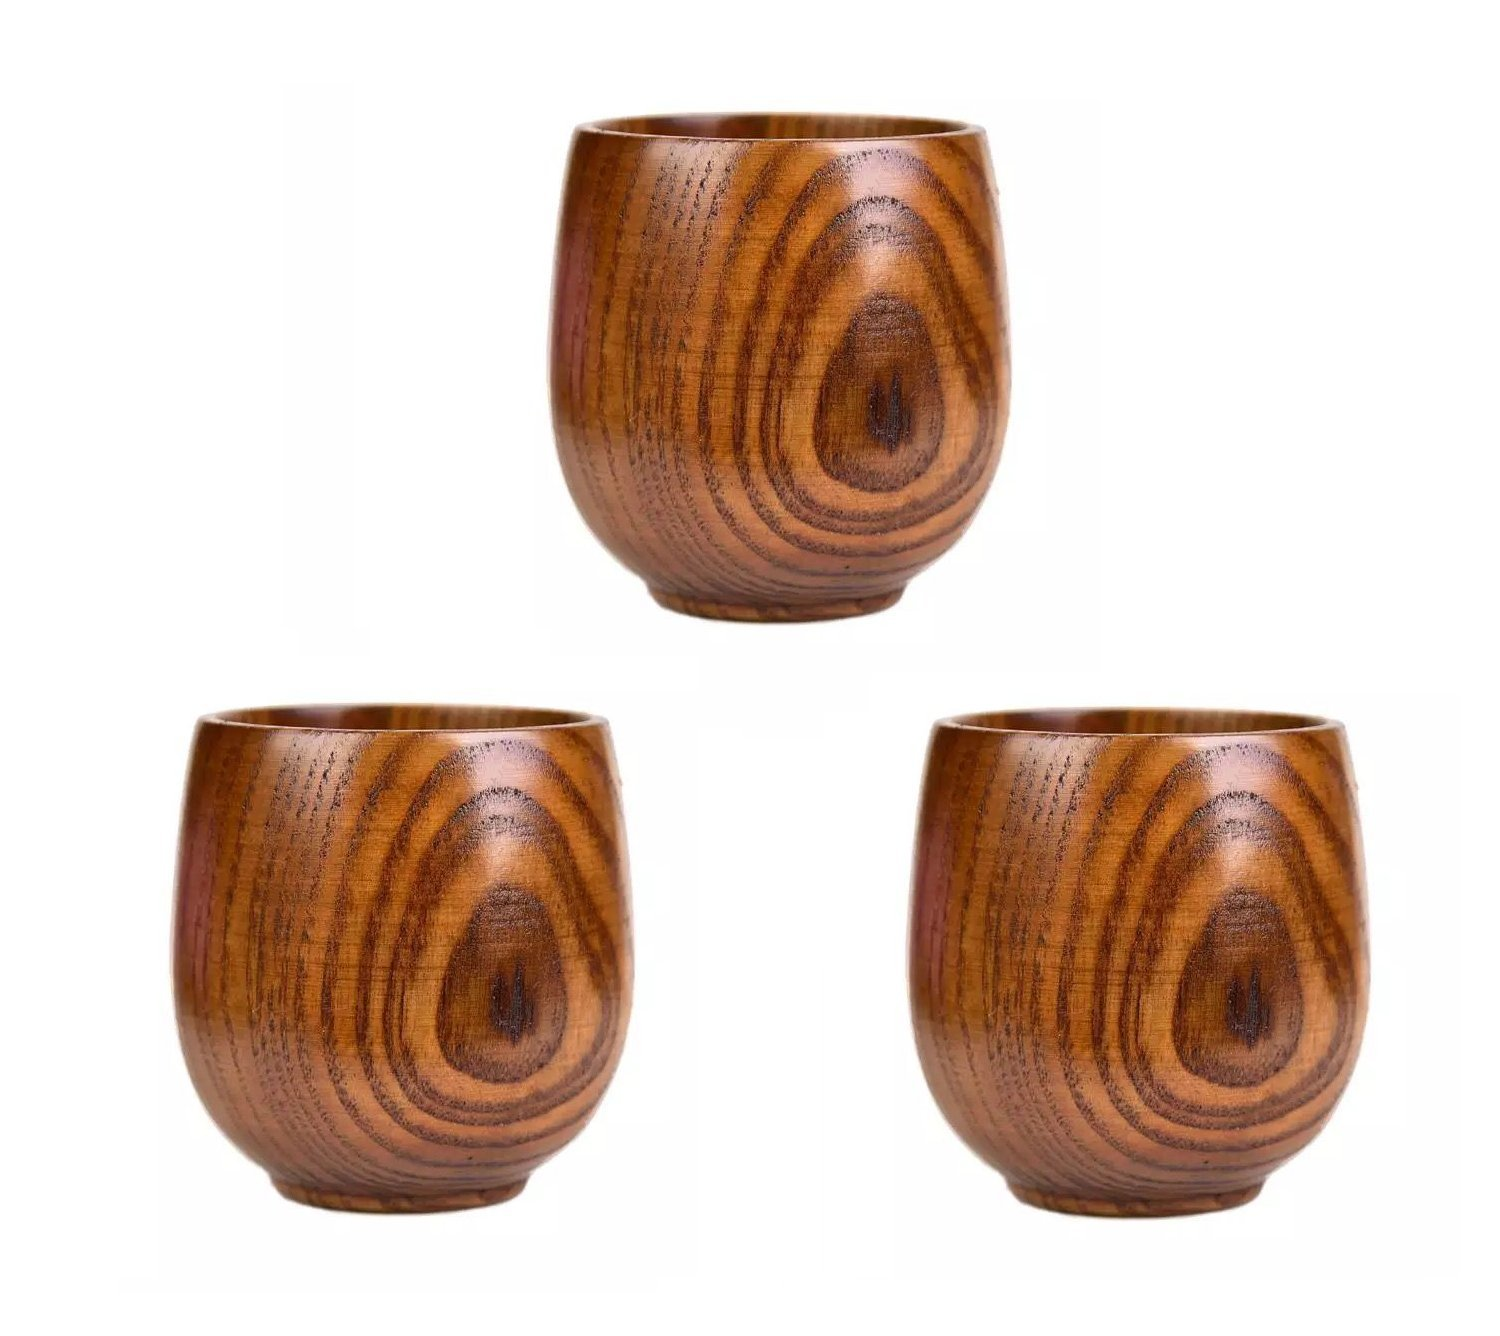 Astra Gourmet Top-Grade Natural Solid Wood Wooden Tea Cup Wine Mug Drinking Cup Coffee Mug 220ml, Set of 3 by Astra Gourmet